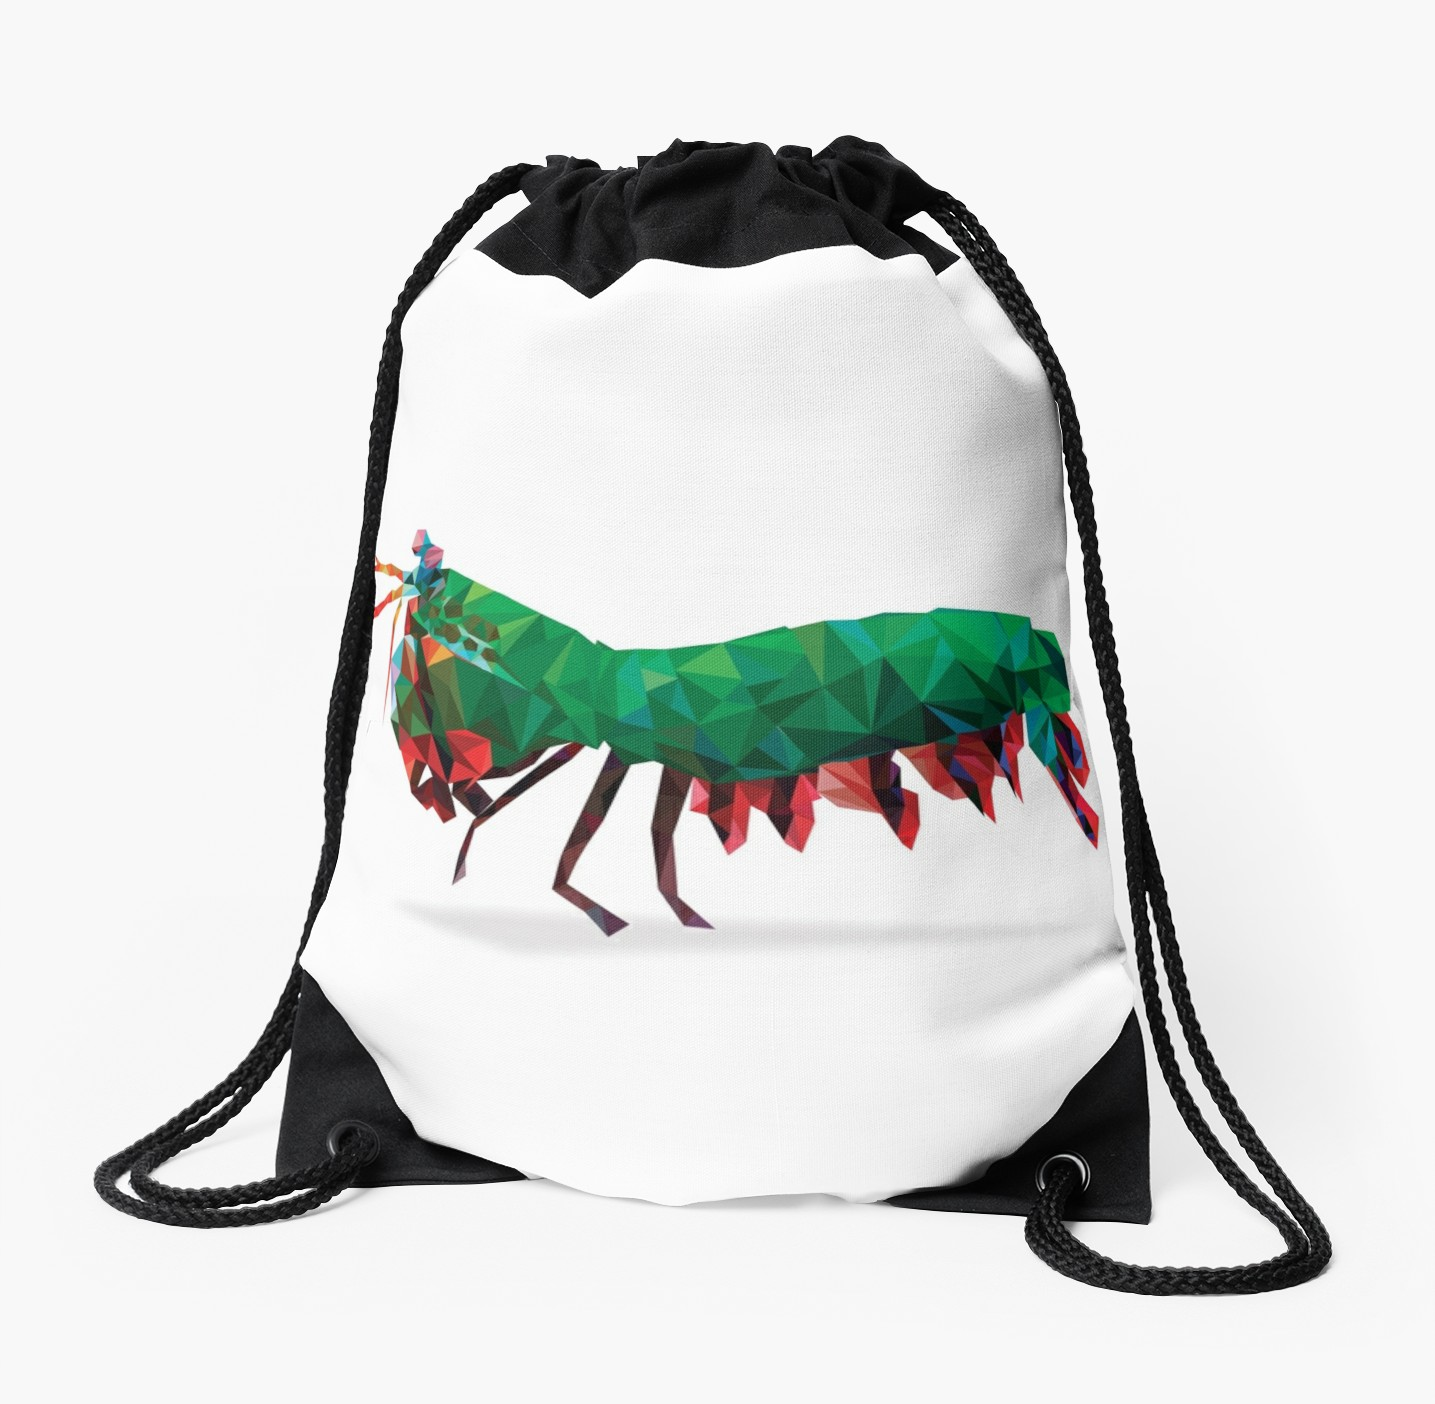 1435x1404 Geometric Abstract Peacock Mantis Shrimp Drawstring Bags By